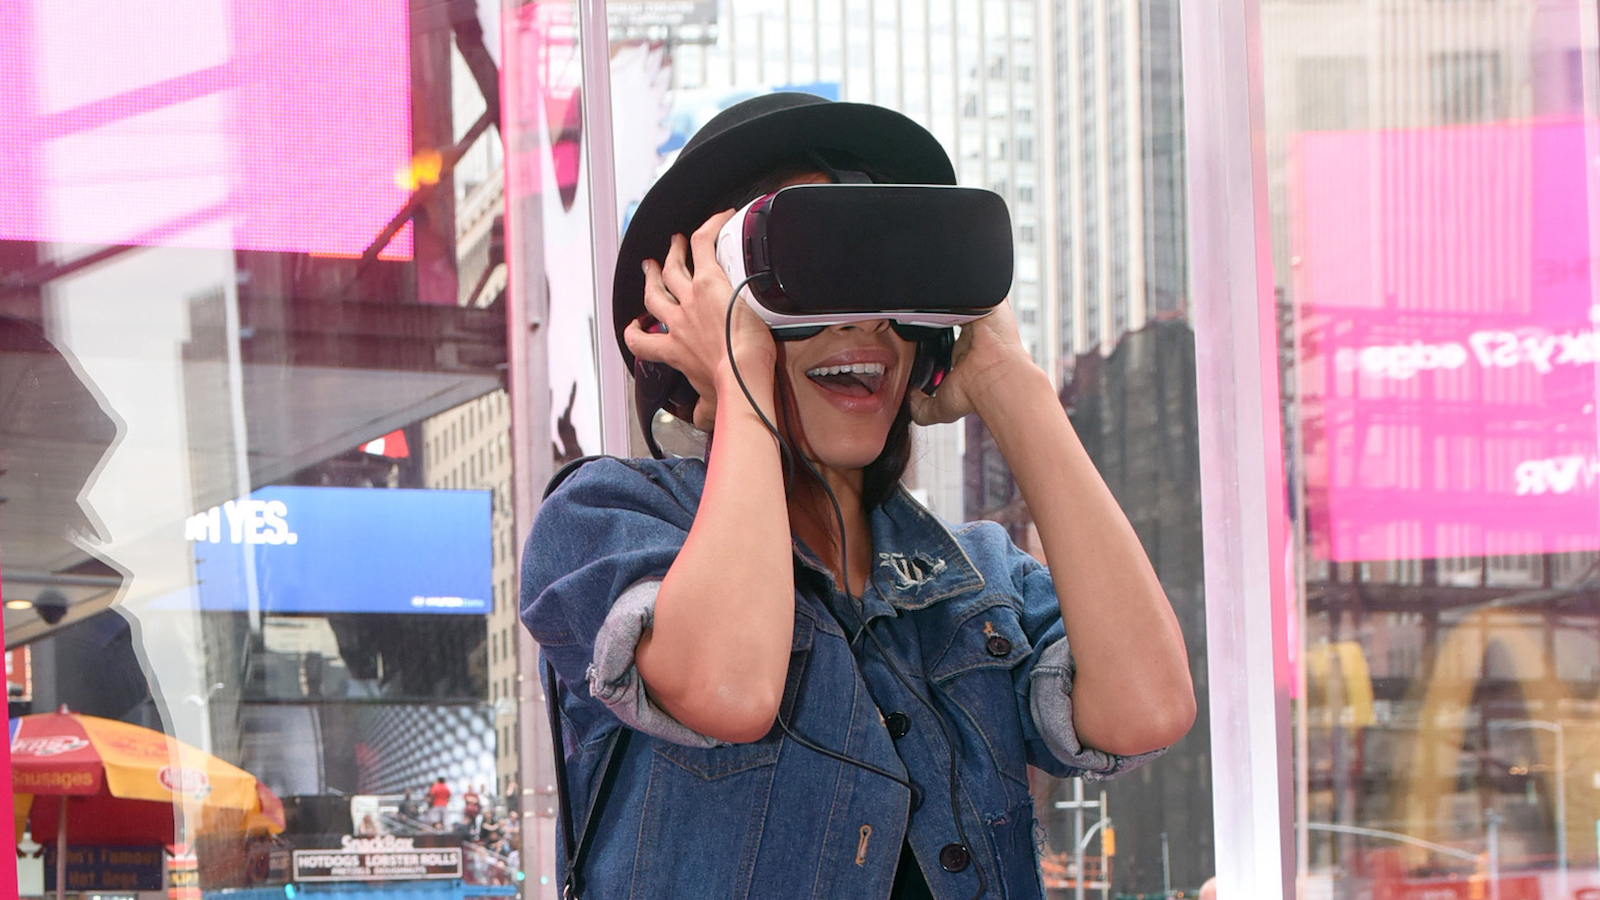 IMAGE DISTRIBUTED FOR T-MOBILE - Rosario Dawson stops by the T-Mobile Times Square Signature Store virtual reality experience featuring Samsung Gear VR and Samsung Galaxy S7, Thursday, March 10, 2016, in New York. (Diane Bondareff/Invision for T-Mobile/AP Images)